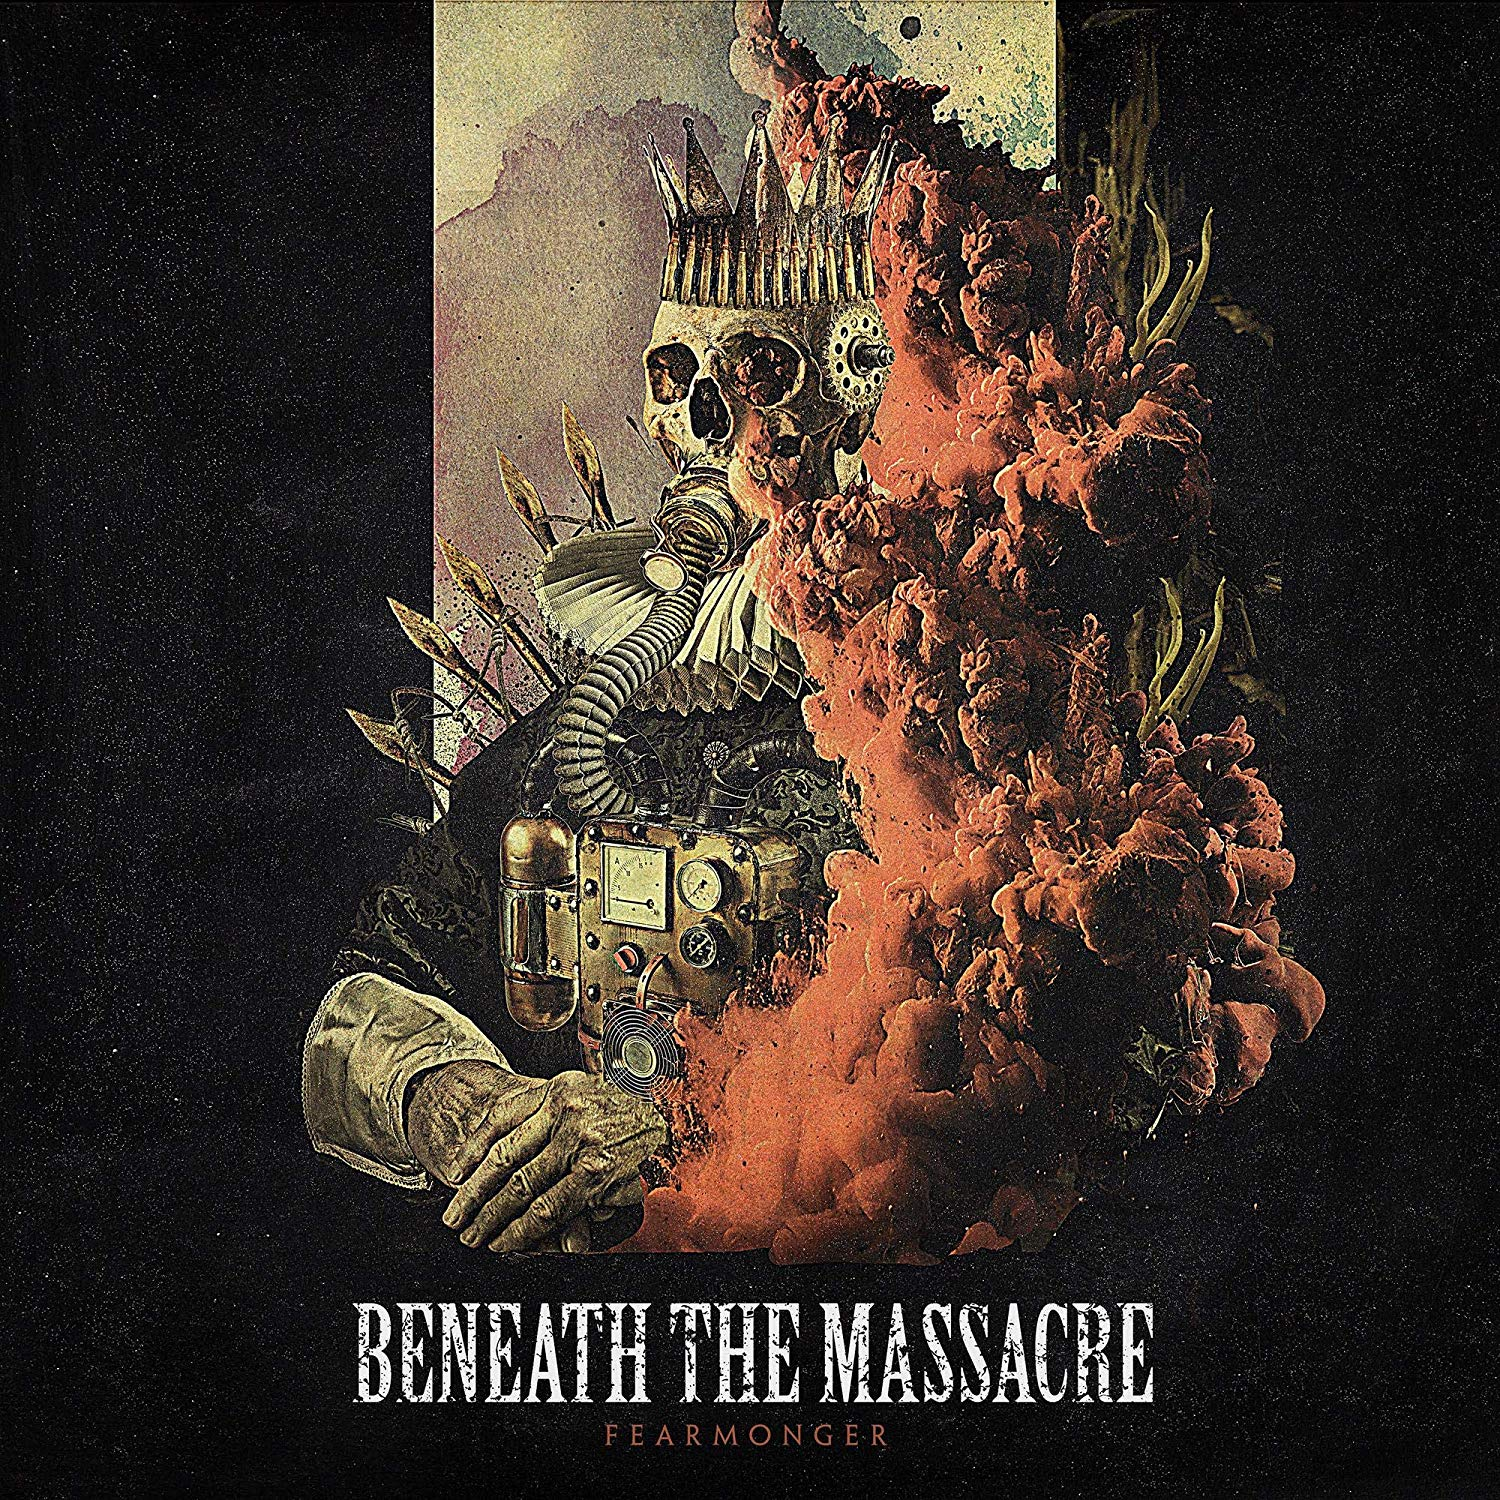 Beneath The Massacre - Fearmonger [Import LP]